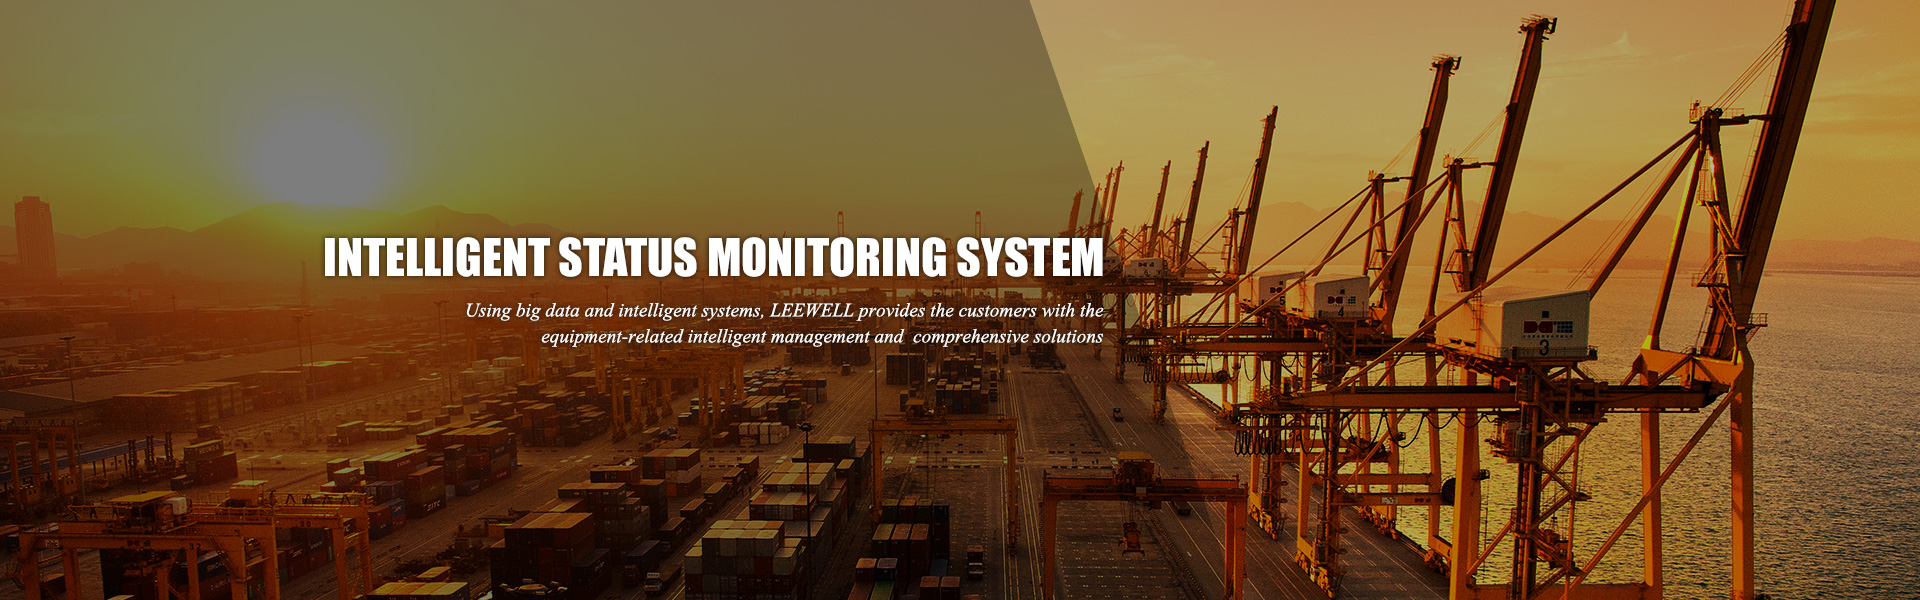 LEEWELL has composed the complete technical layout from sensors, data acquisition terminals to big data, intelligent diagnosis and remote service solutions.